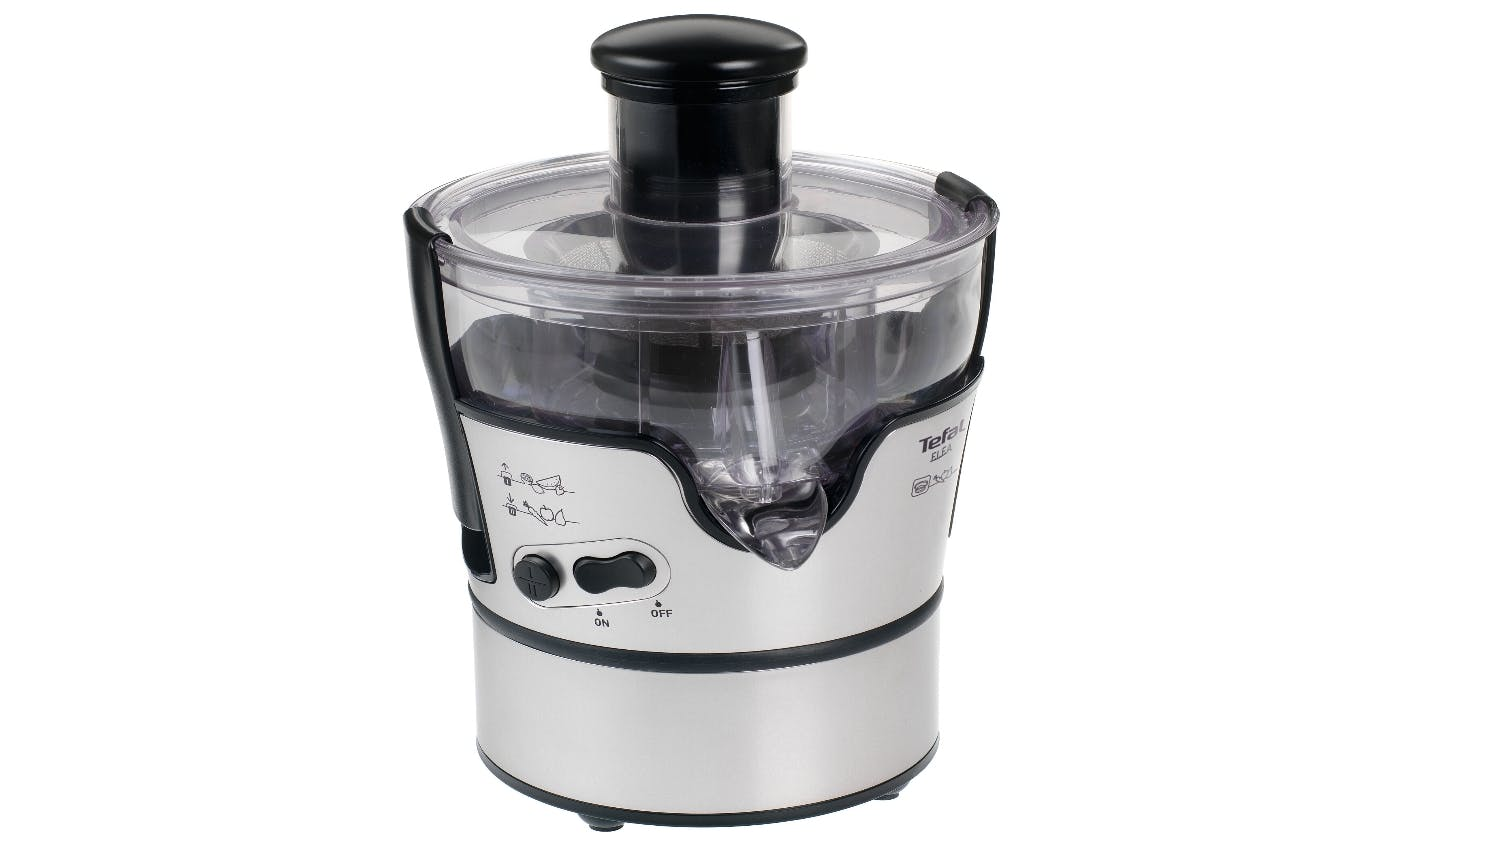 Tefal Elea Juicer Harvey Norman Singapore